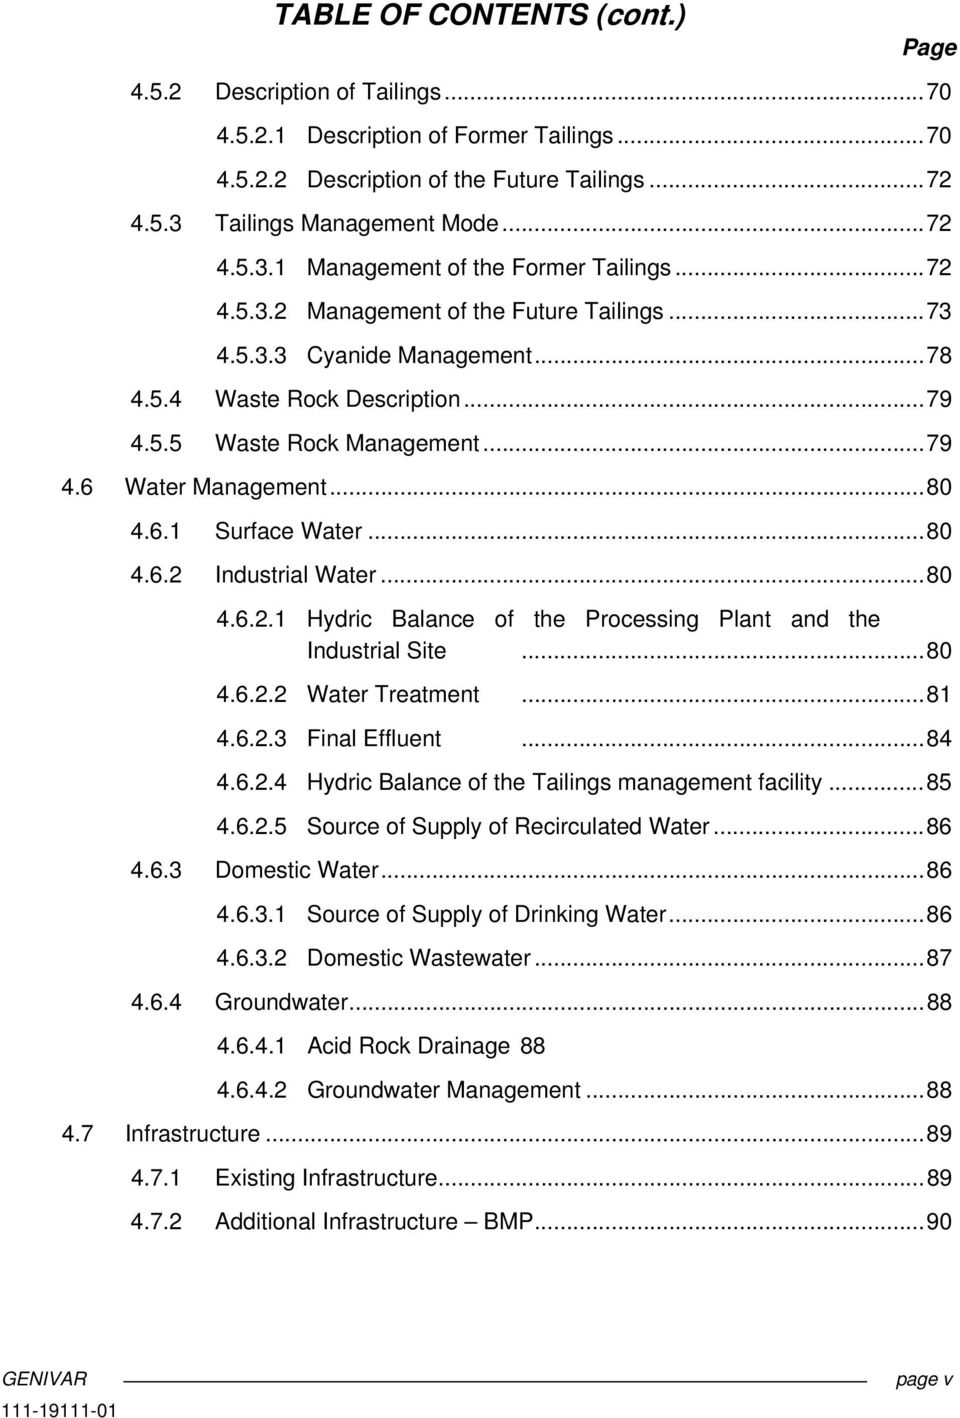 .. 79 4.6 Water Management... 80 4.6.1 Surface Water... 80 4.6.2 Industrial Water... 80 4.6.2.1 Hydric Balance of the Processing Plant and the Industrial Site... 80 4.6.2.2 Water Treatment... 81 4.6.2.3 Final Effluent.